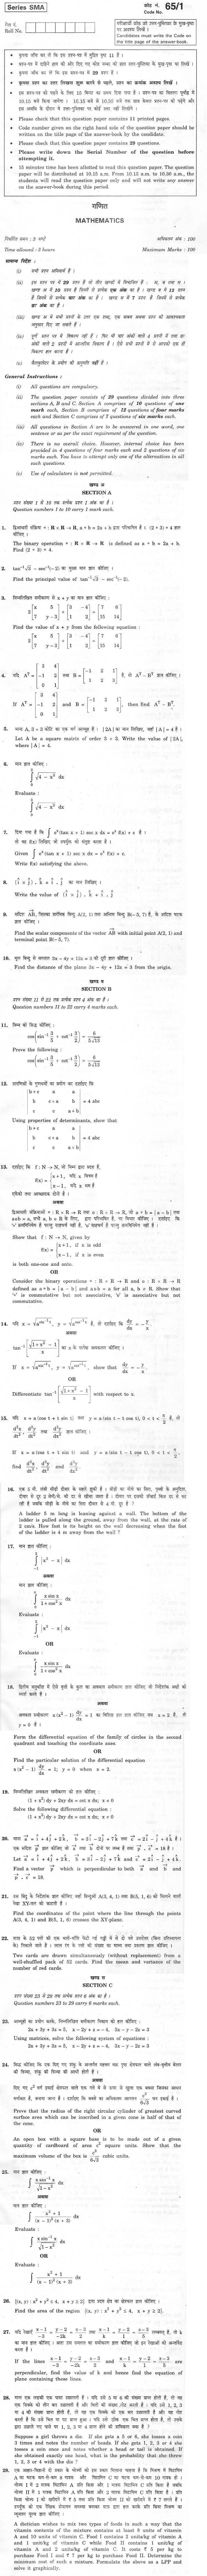 CBSE Class XII Previous Year Question Paper 2012 Mathematics